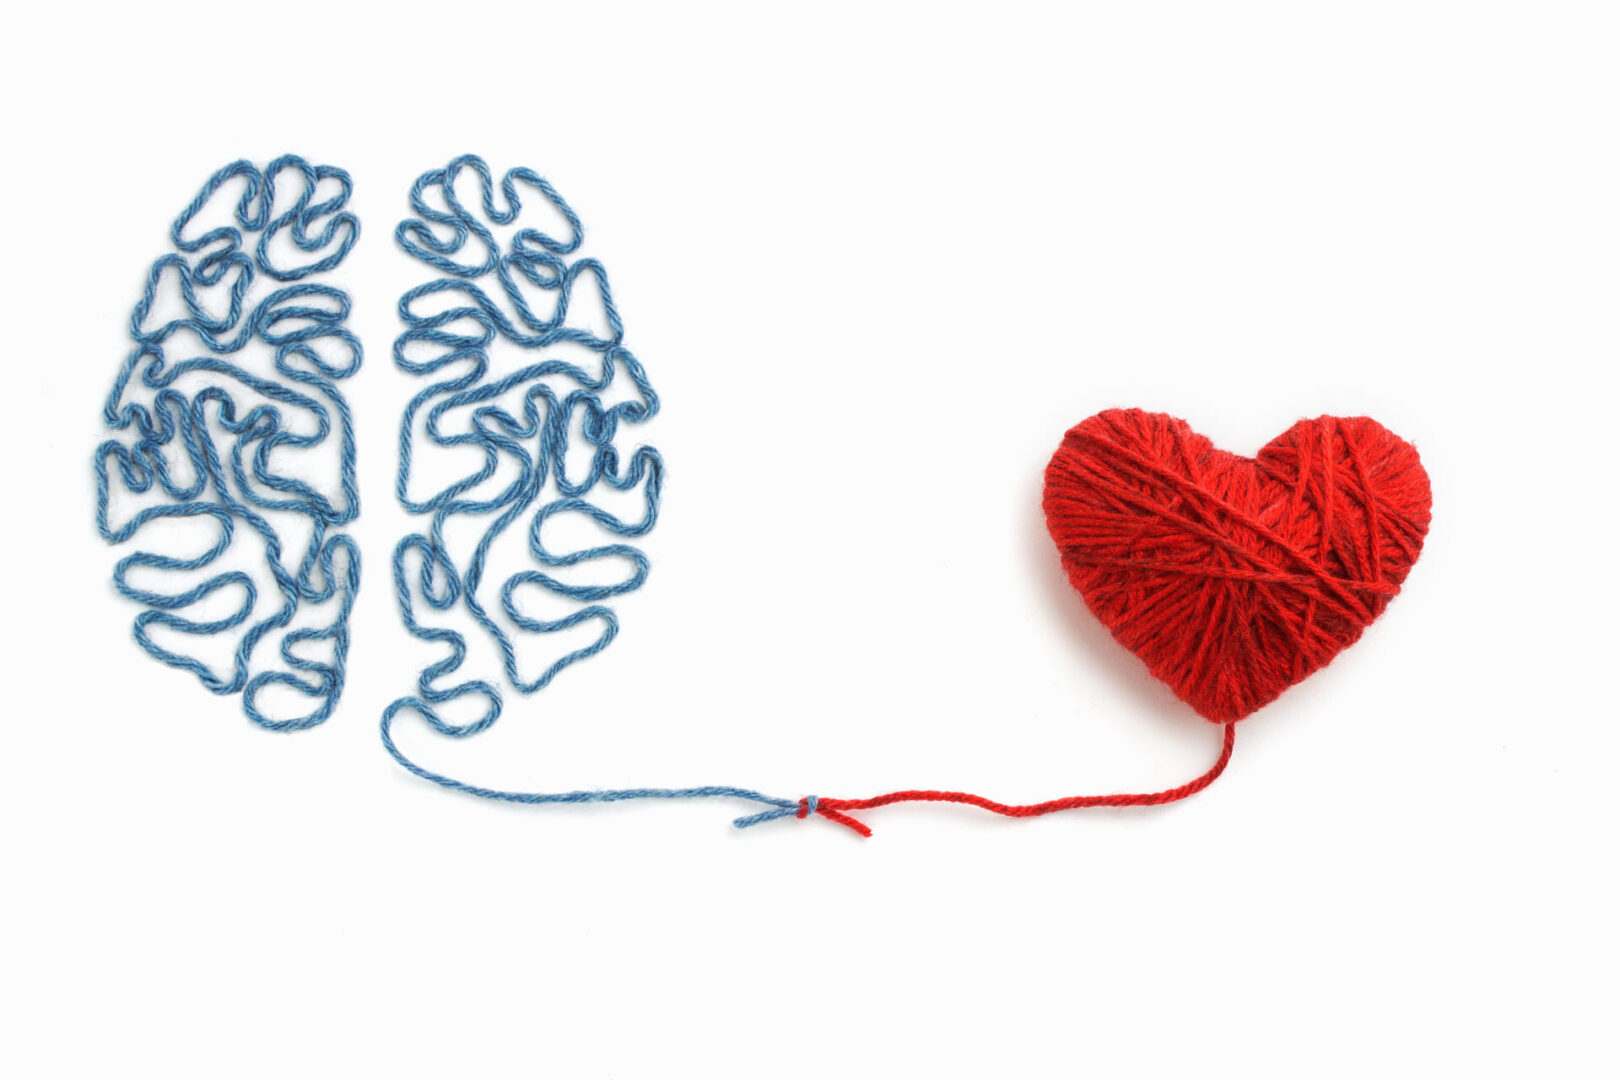 String Brain and Heart